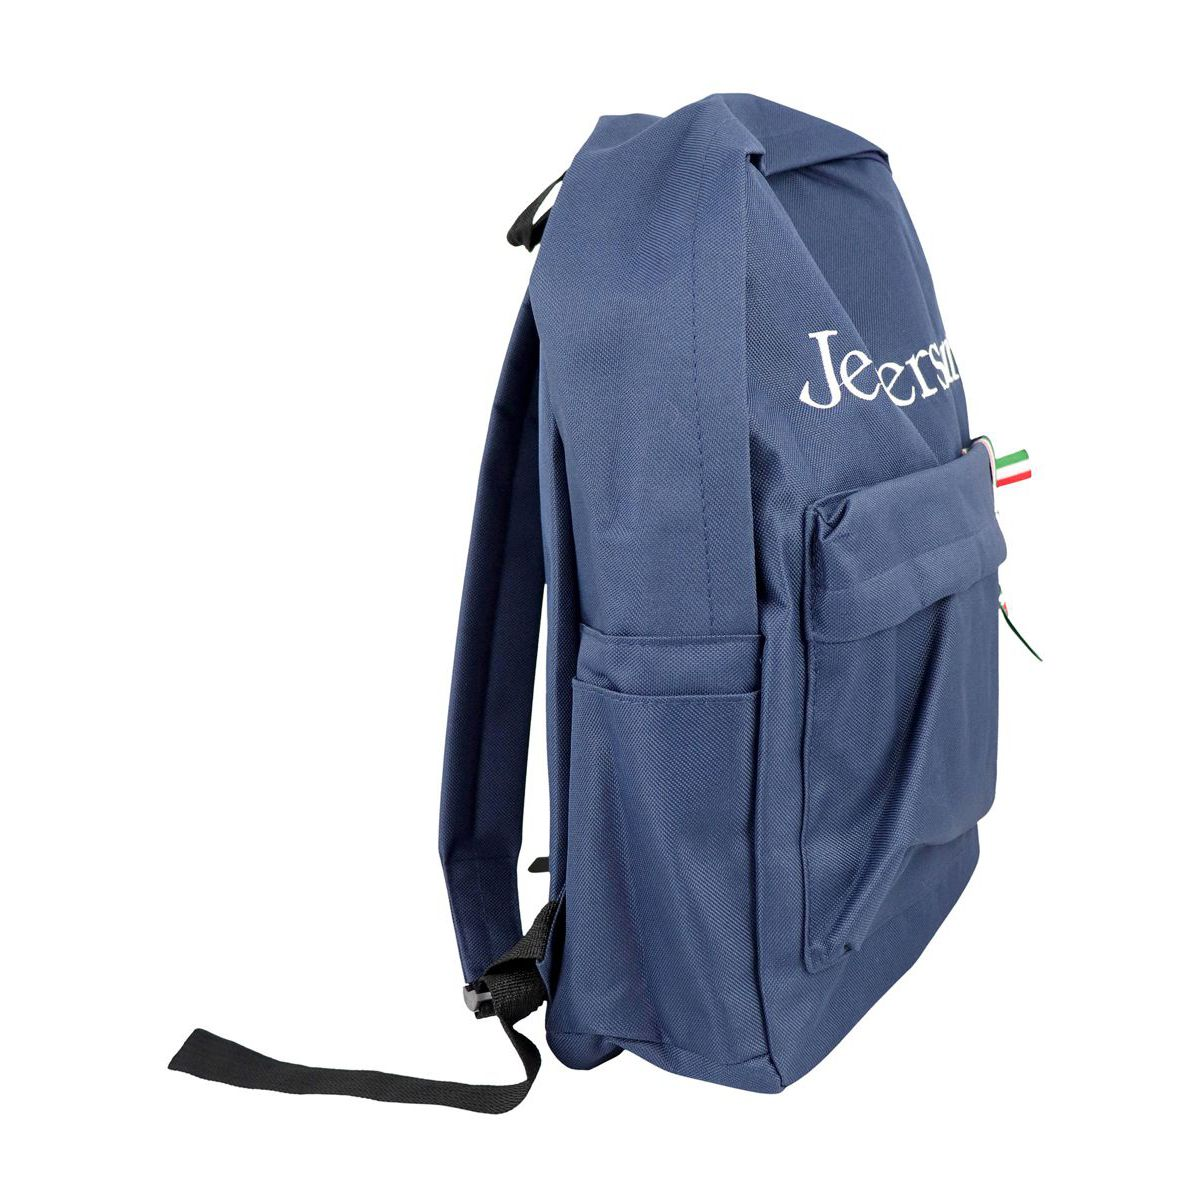 Backpack with front logo and Italian flag Blue Jeckerson